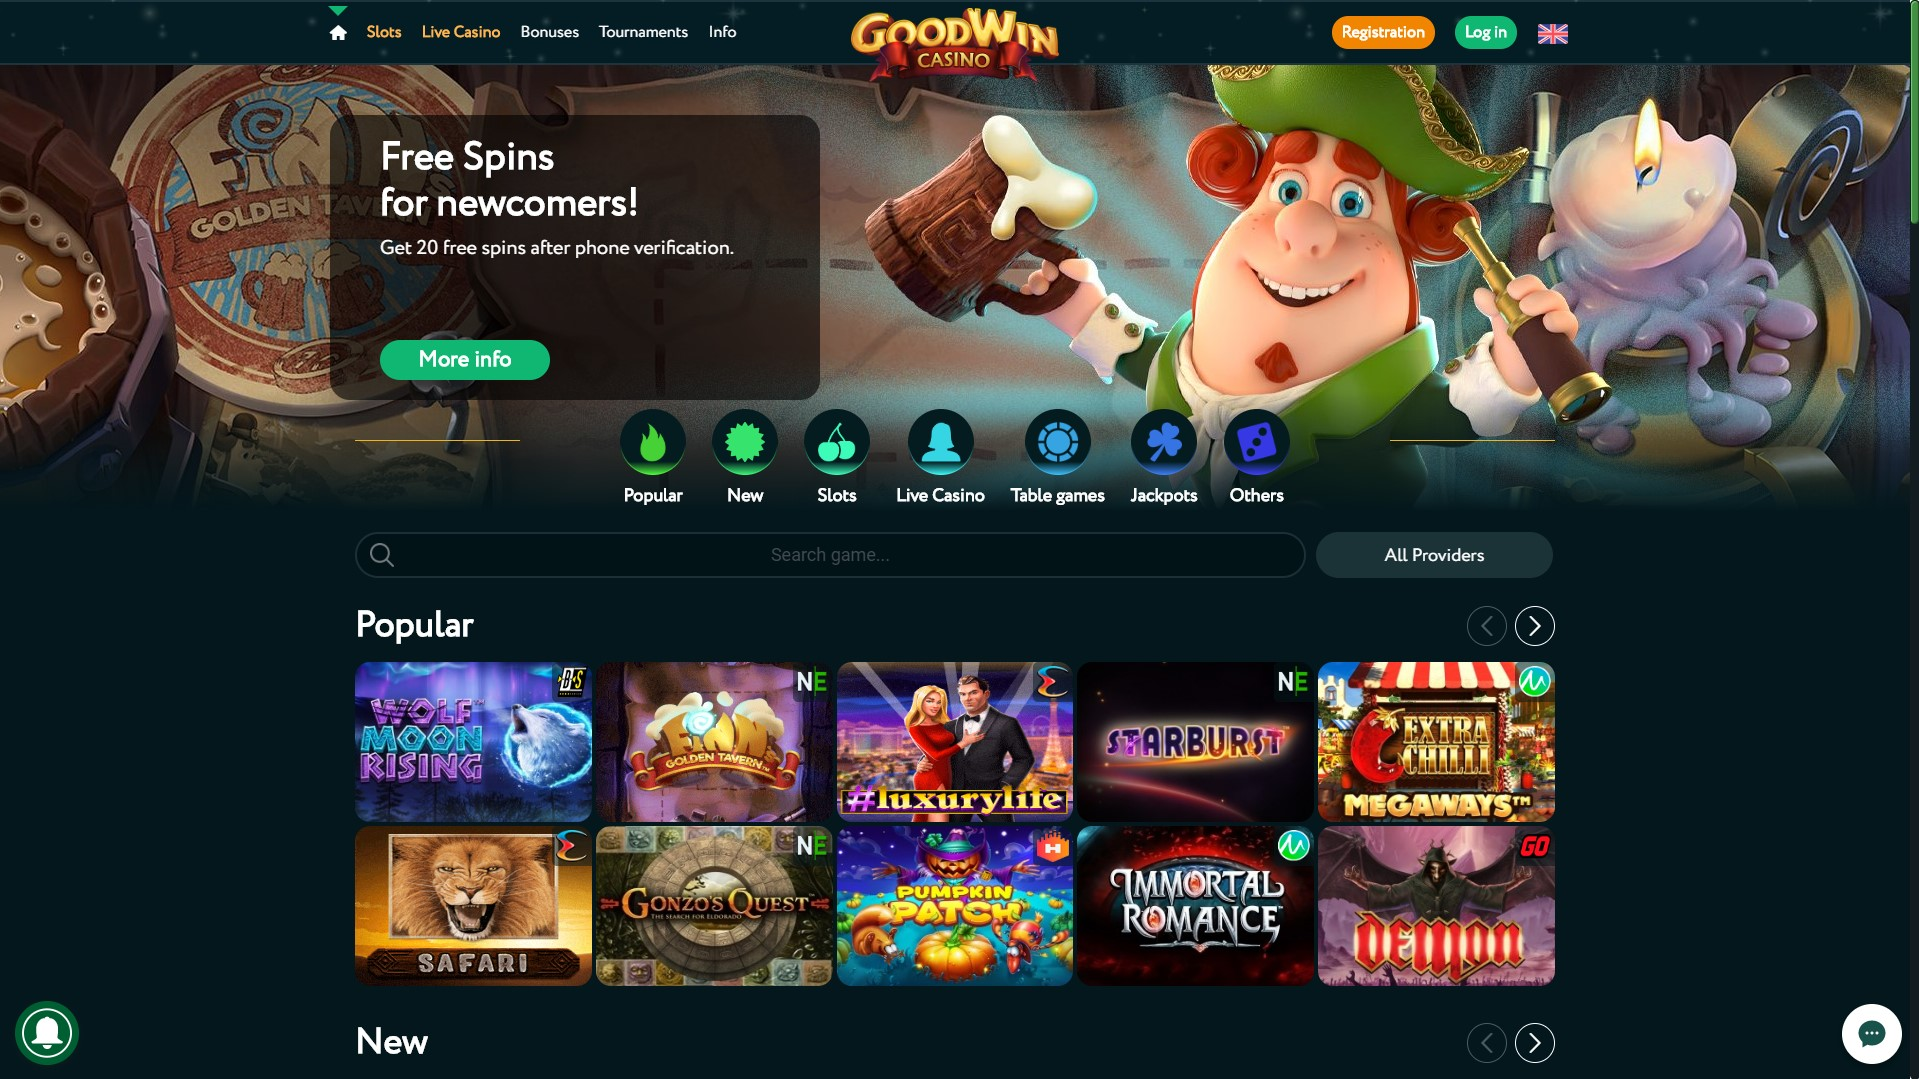 Goodwin Casino Review Safe Or Scam